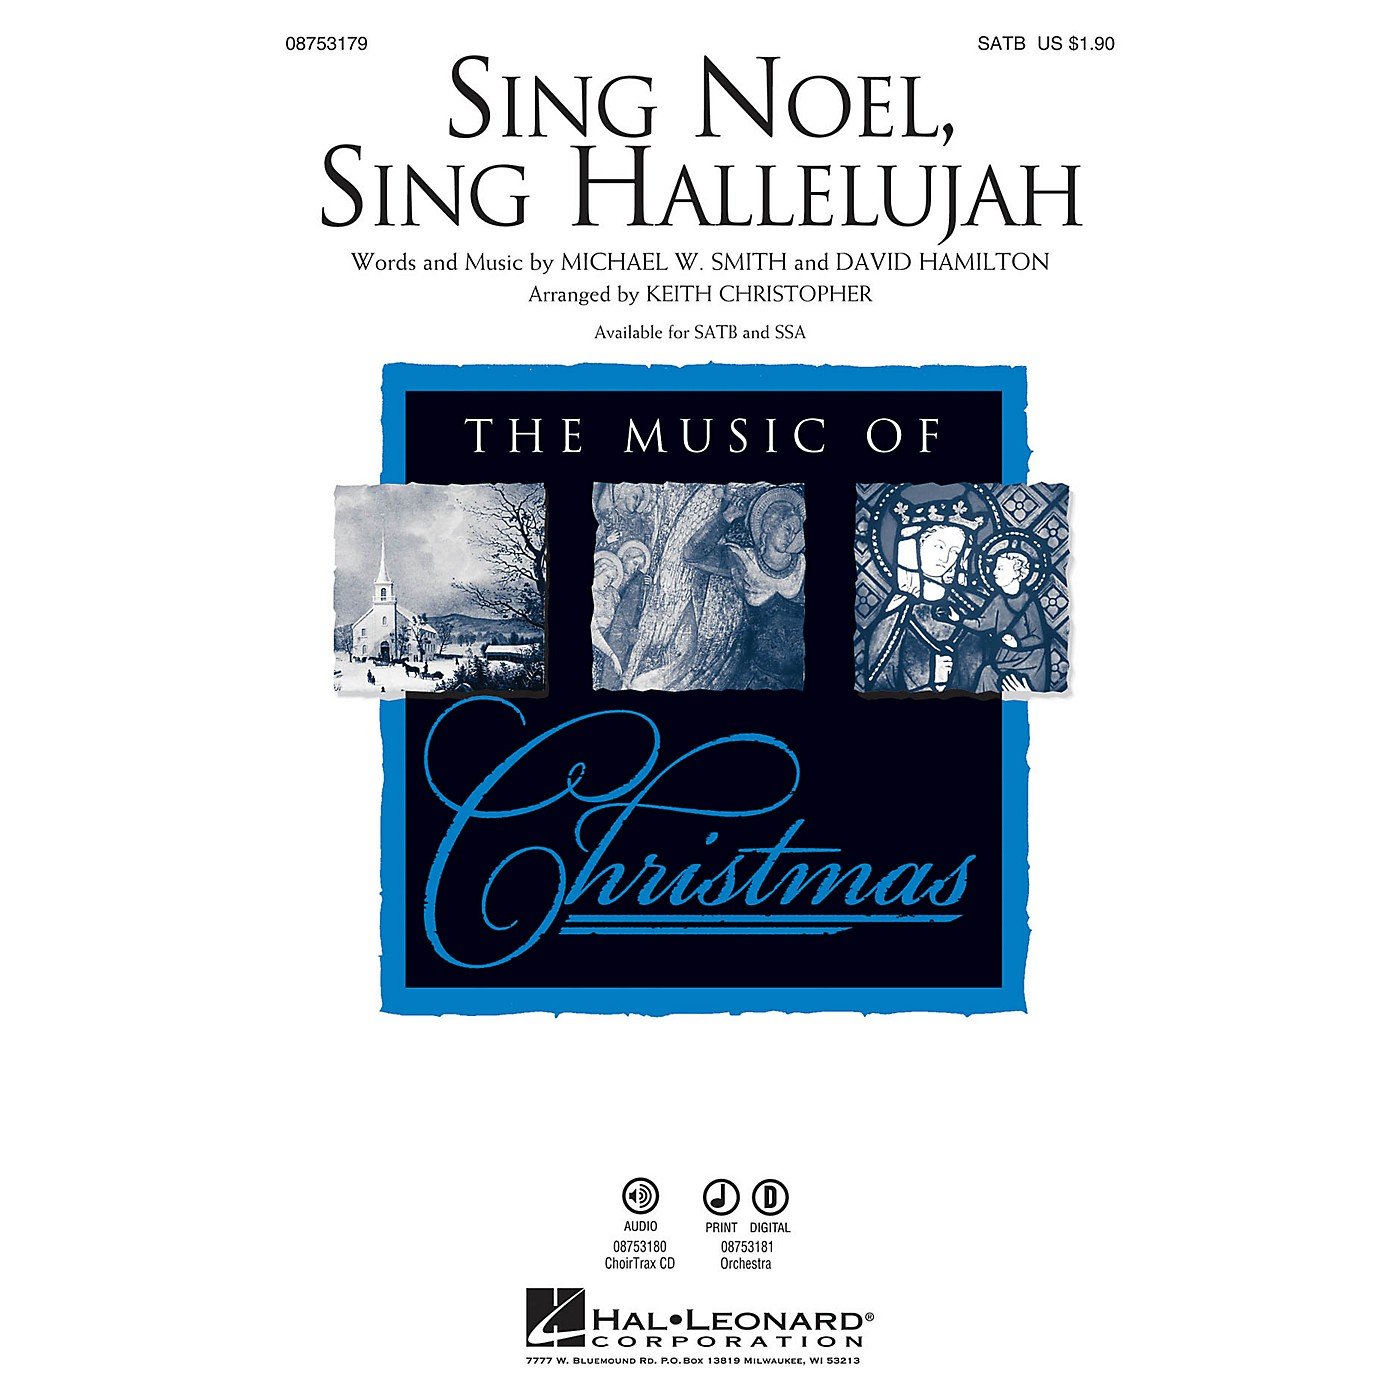 Hal Leonard Sing Noel, Sing Hallelujah Handbell Acc by Michael W. Smith Arranged by Keith Christopher thumbnail